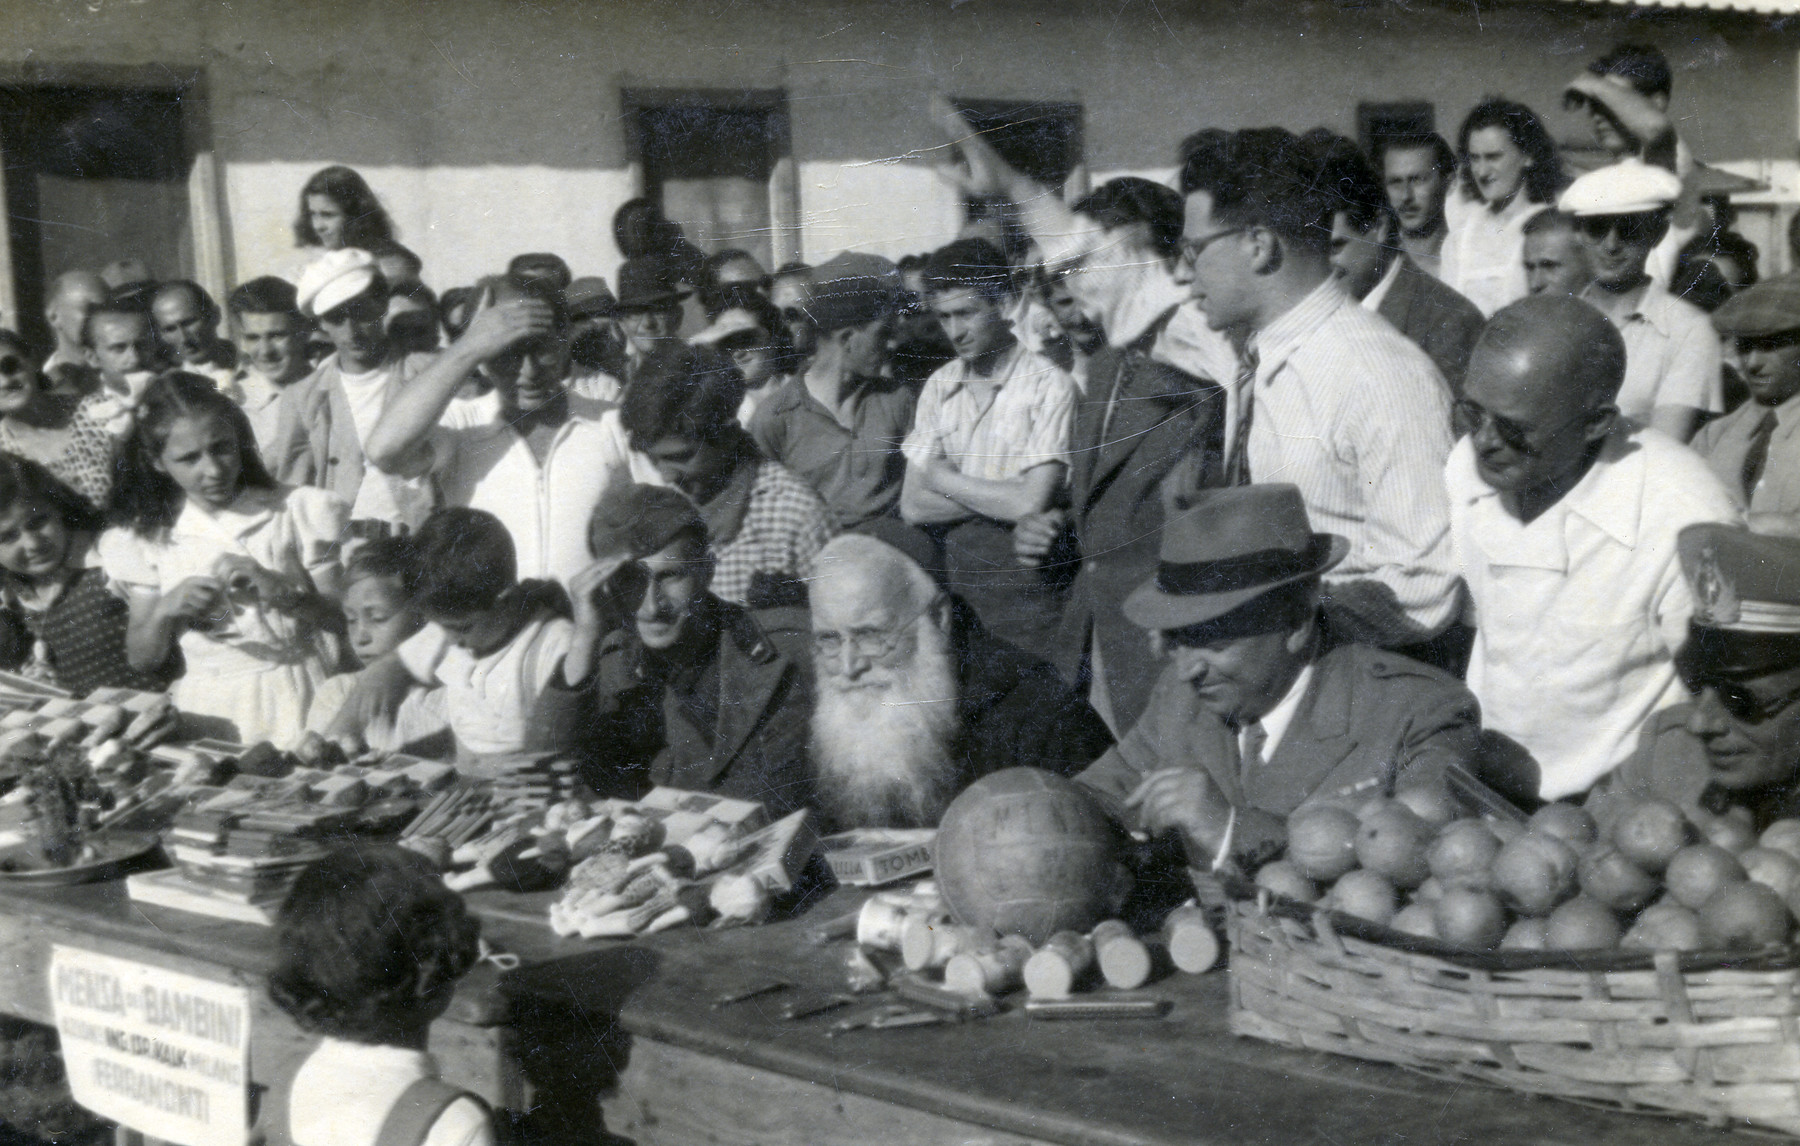 Internees at Ferramonti gather by a table displaying various goods.